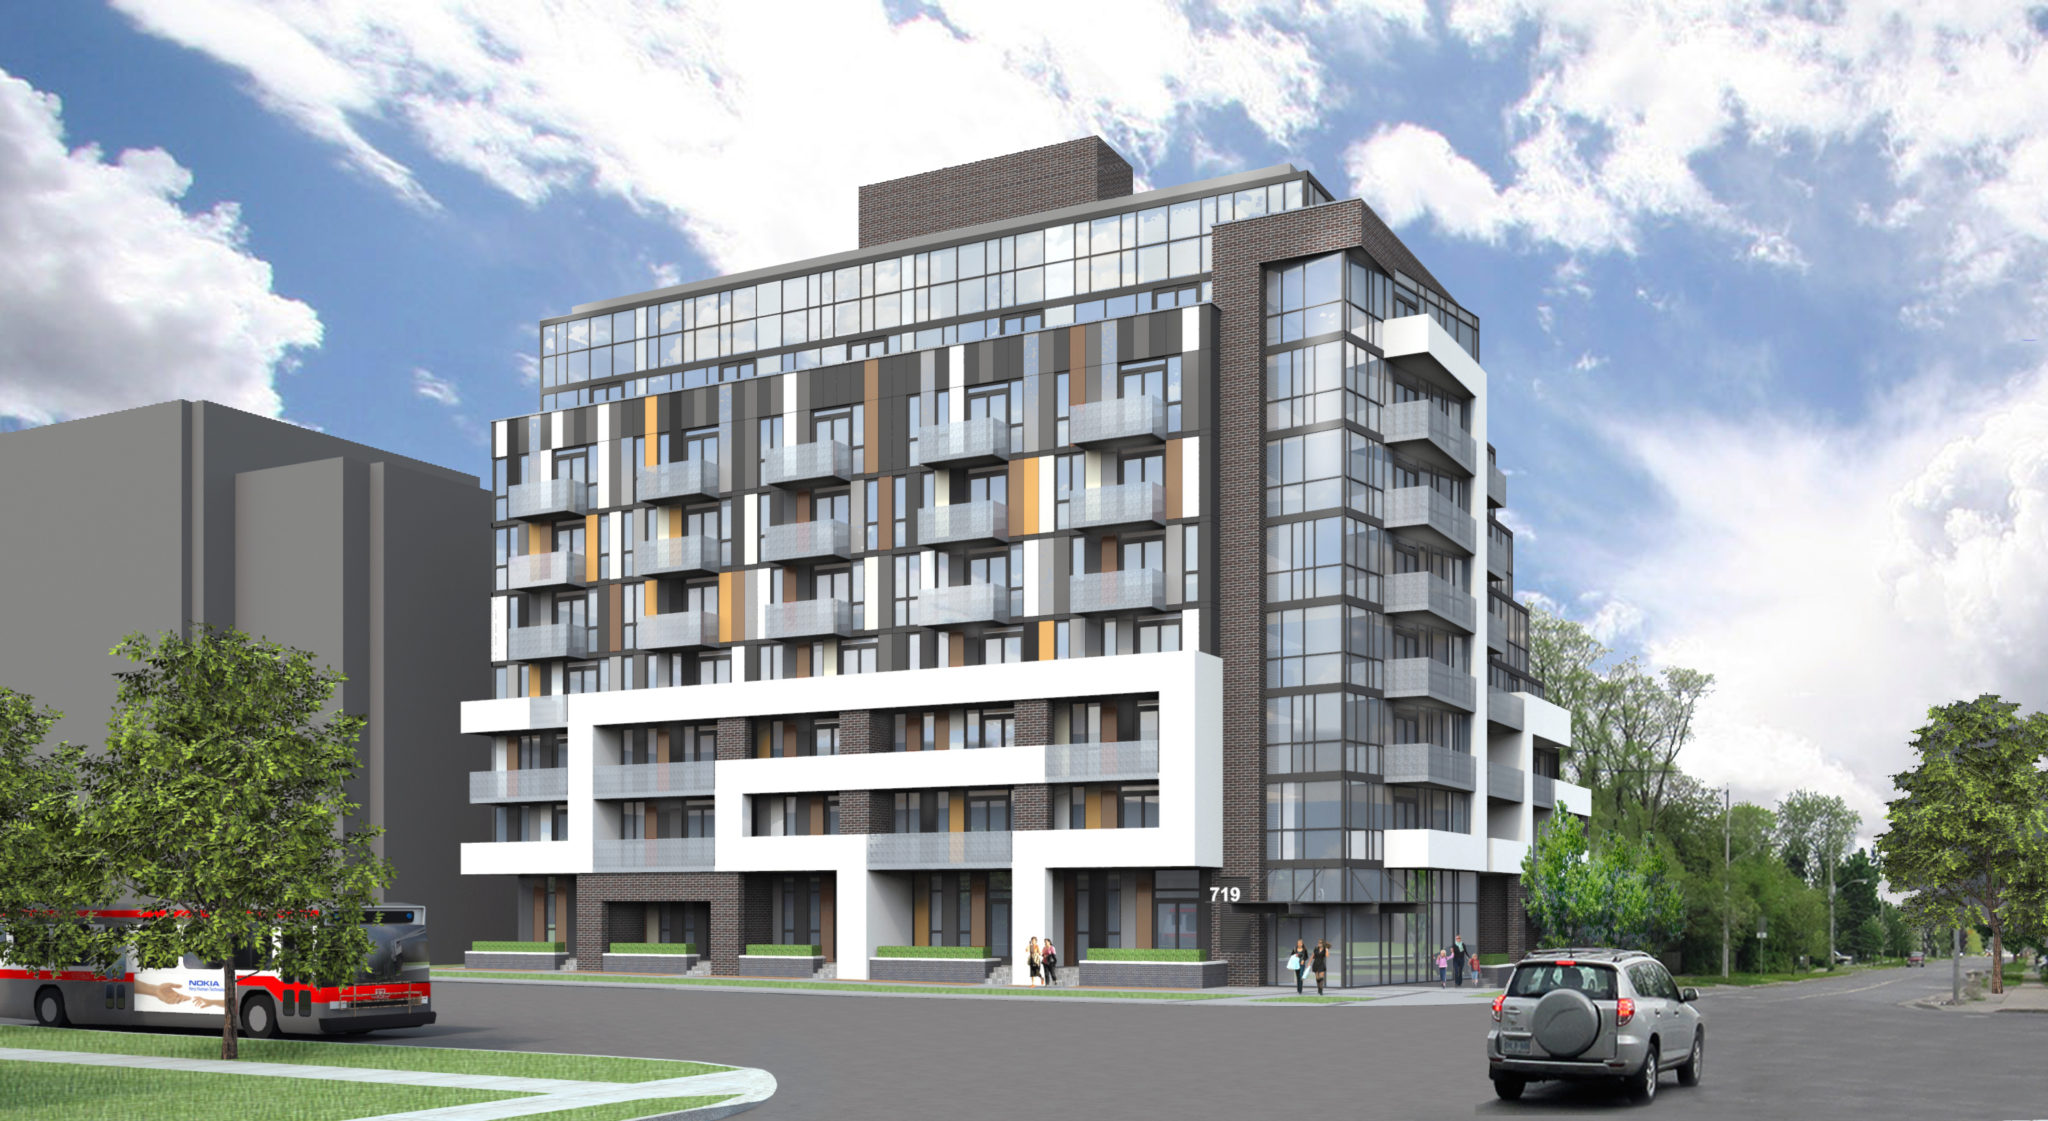 719 Sheppard Ave West - Multi Family Residential Development